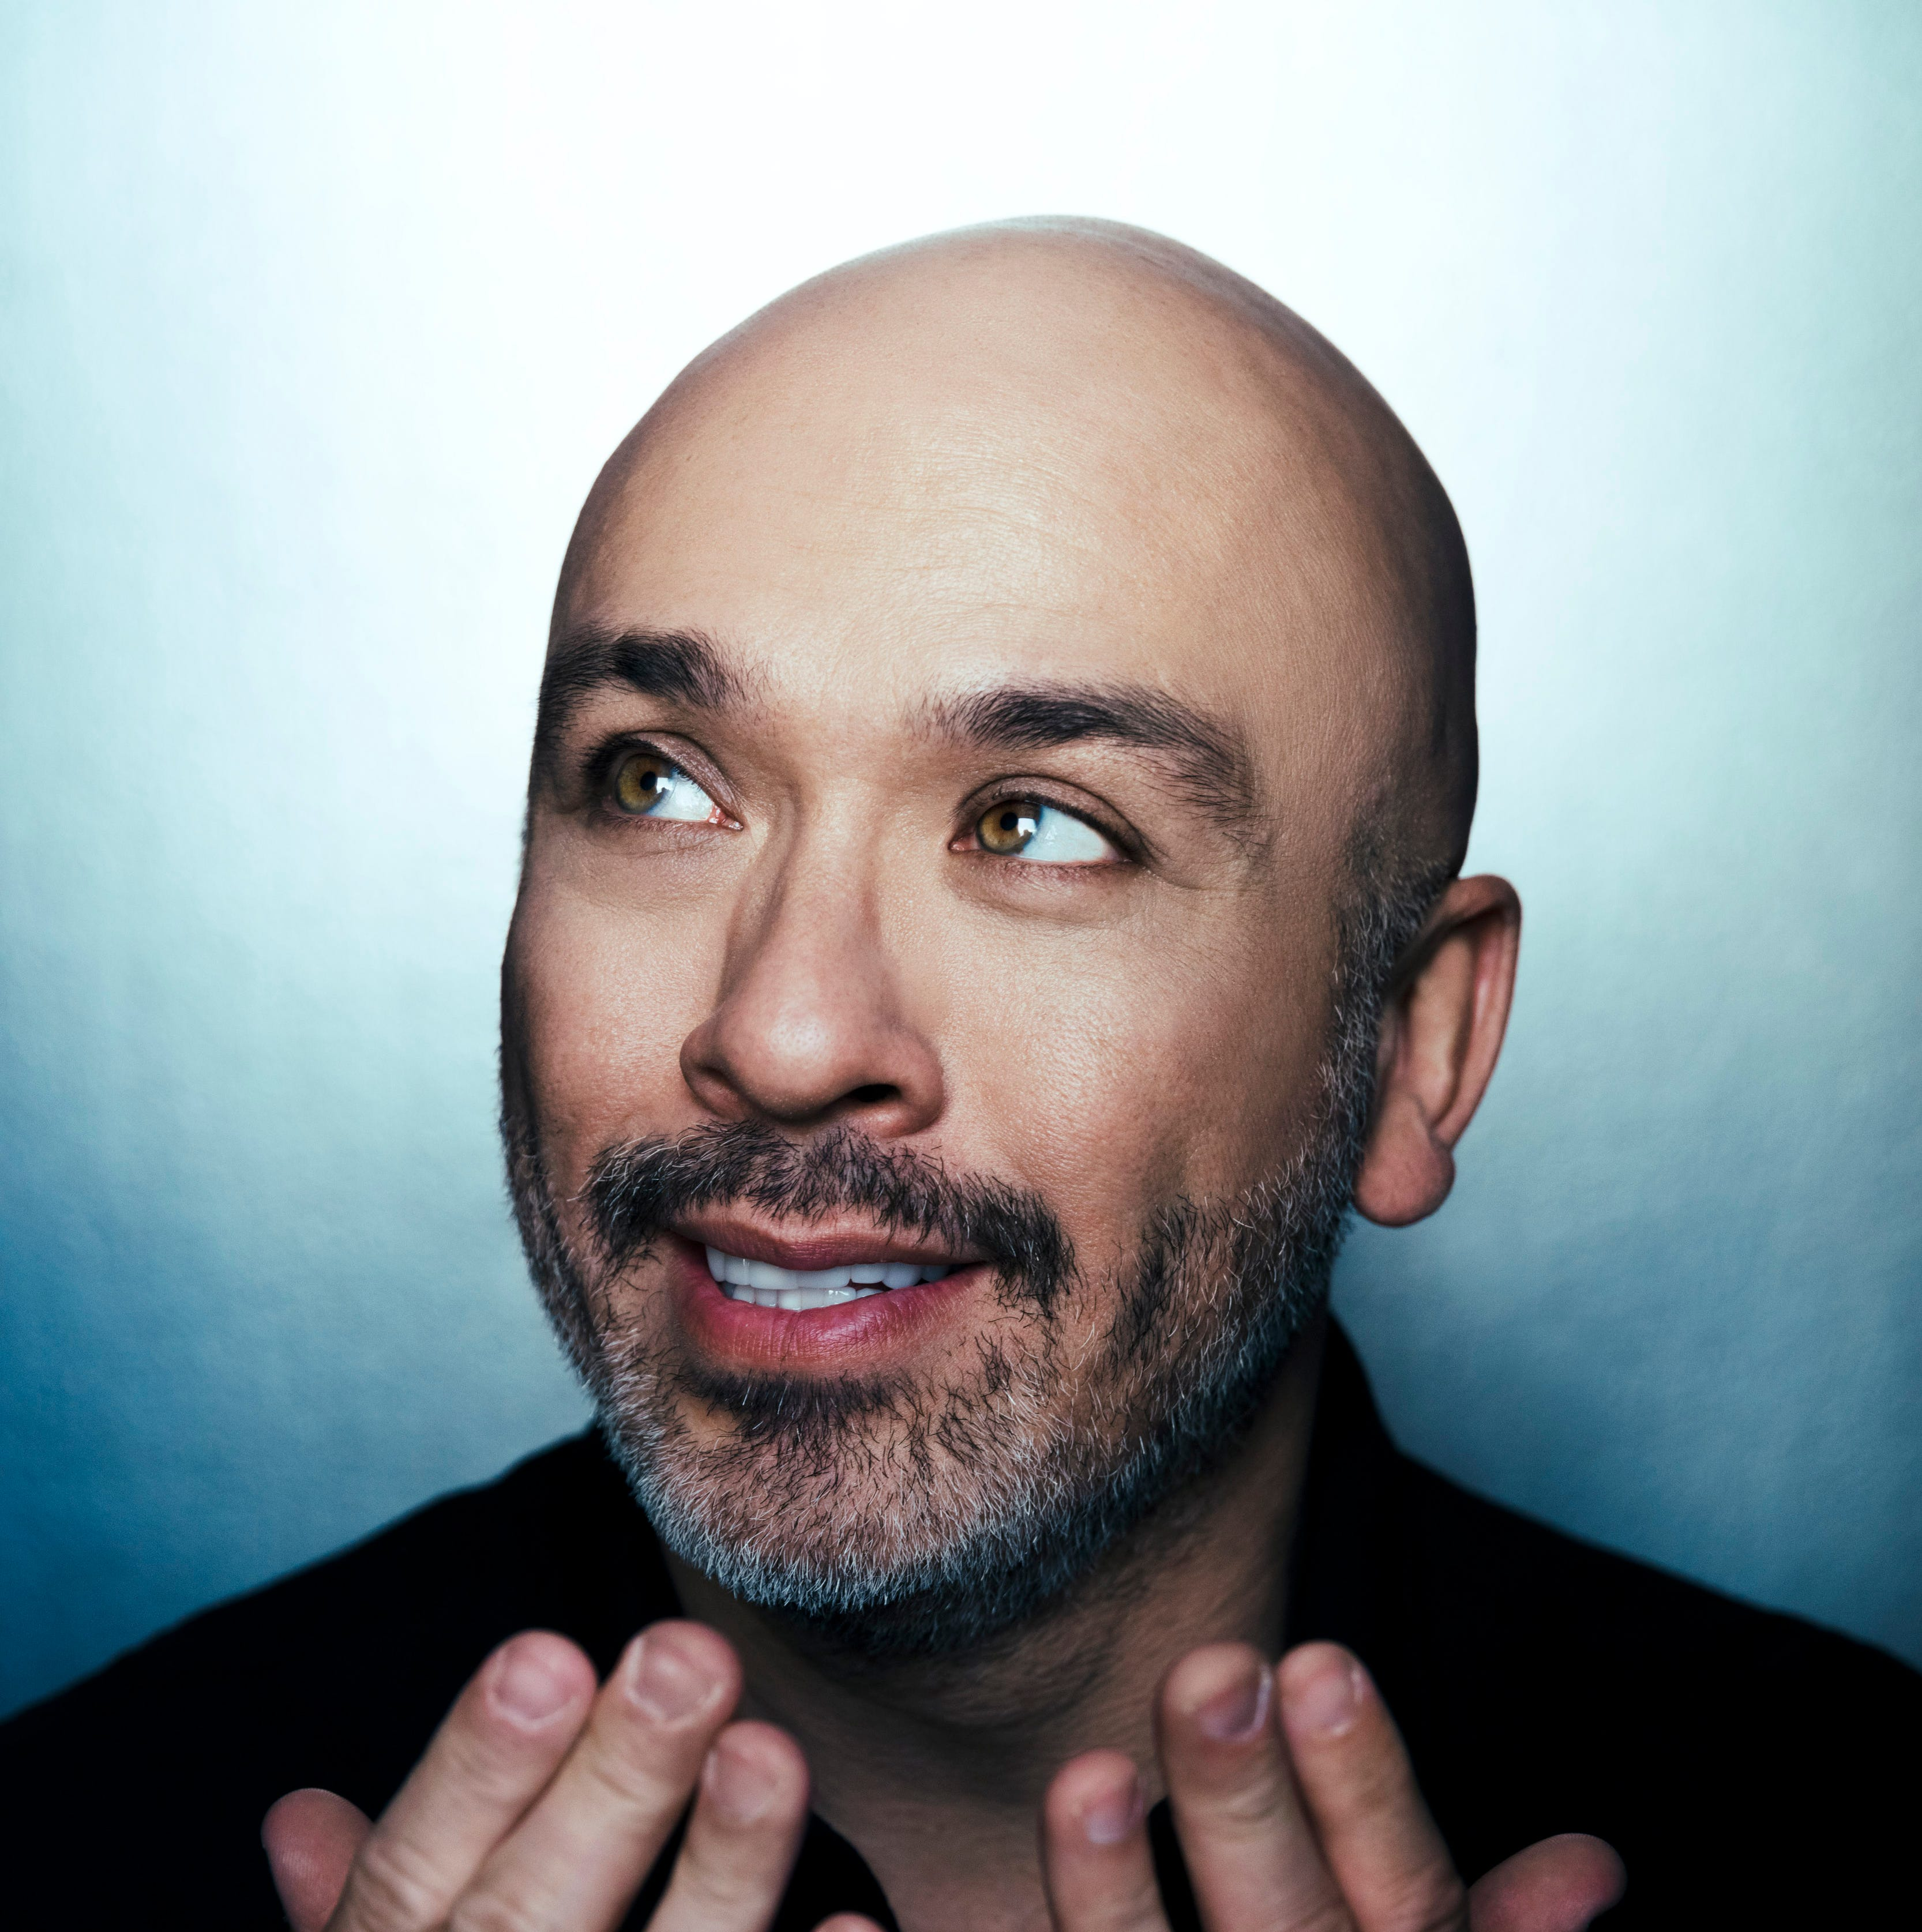 Comedian Jo Koy to kick off tour in October at Weidner Center in Green Bay